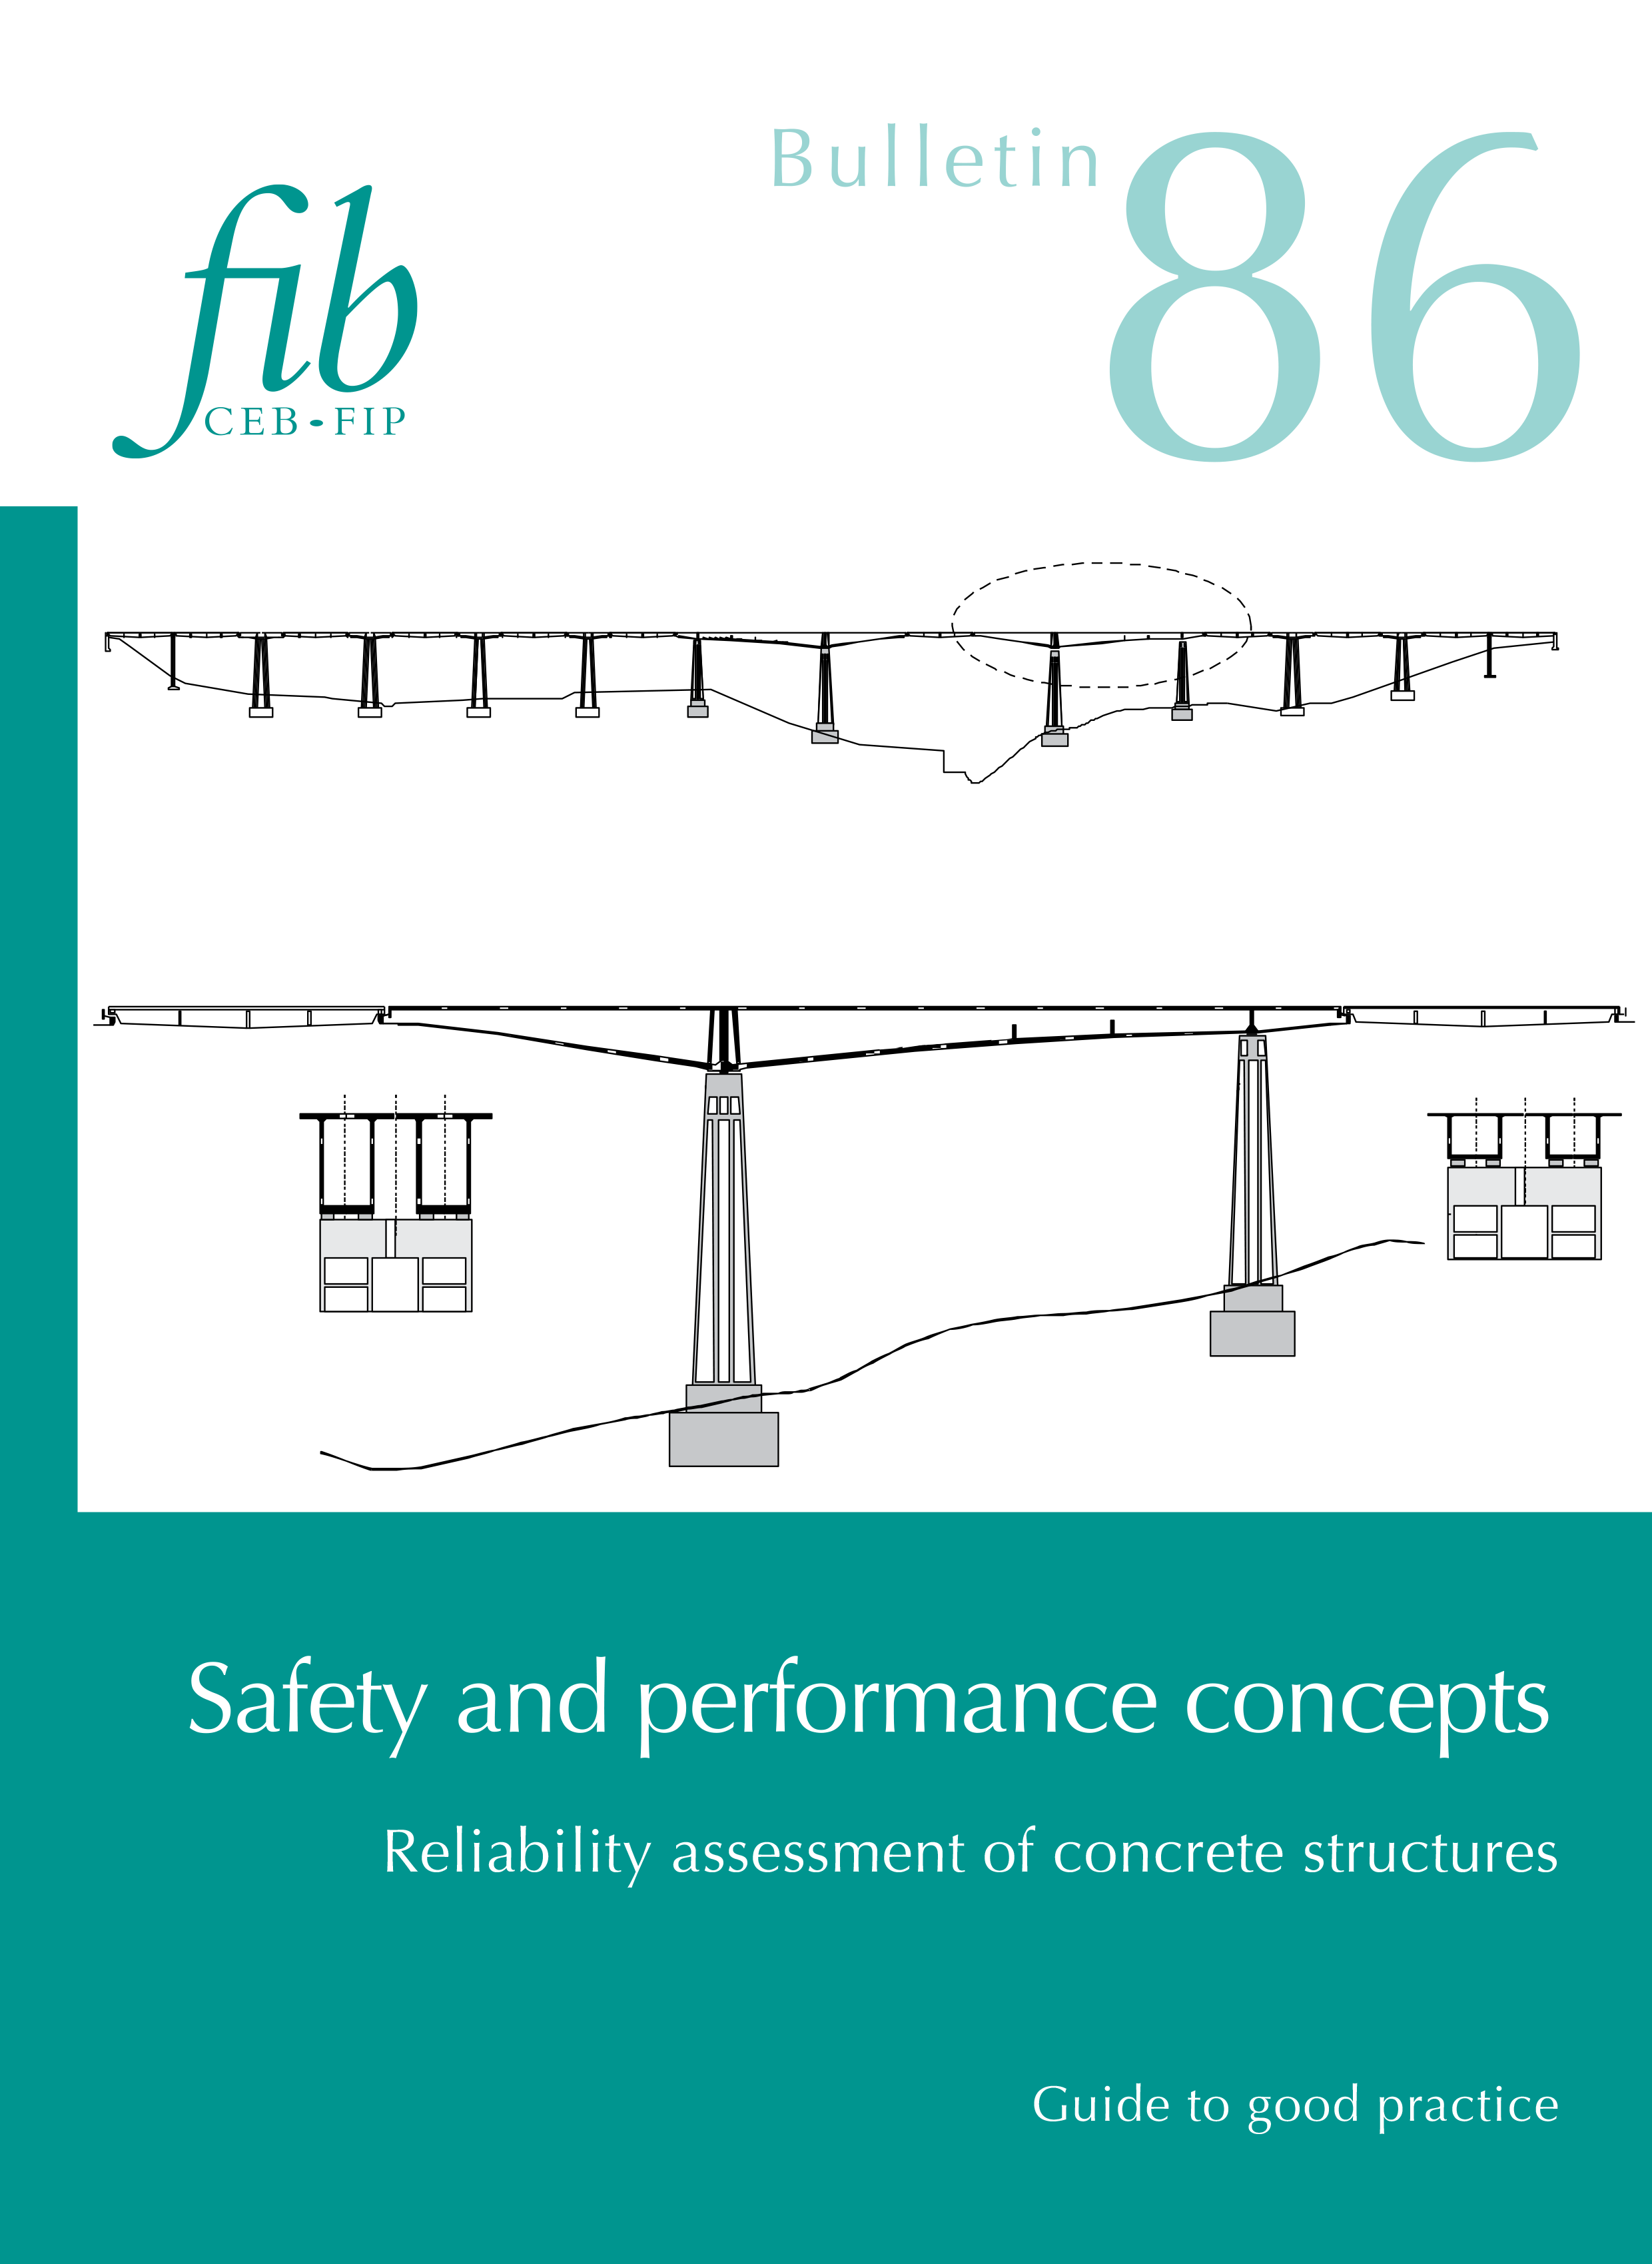 Reinforced Concrete Structural Reliability